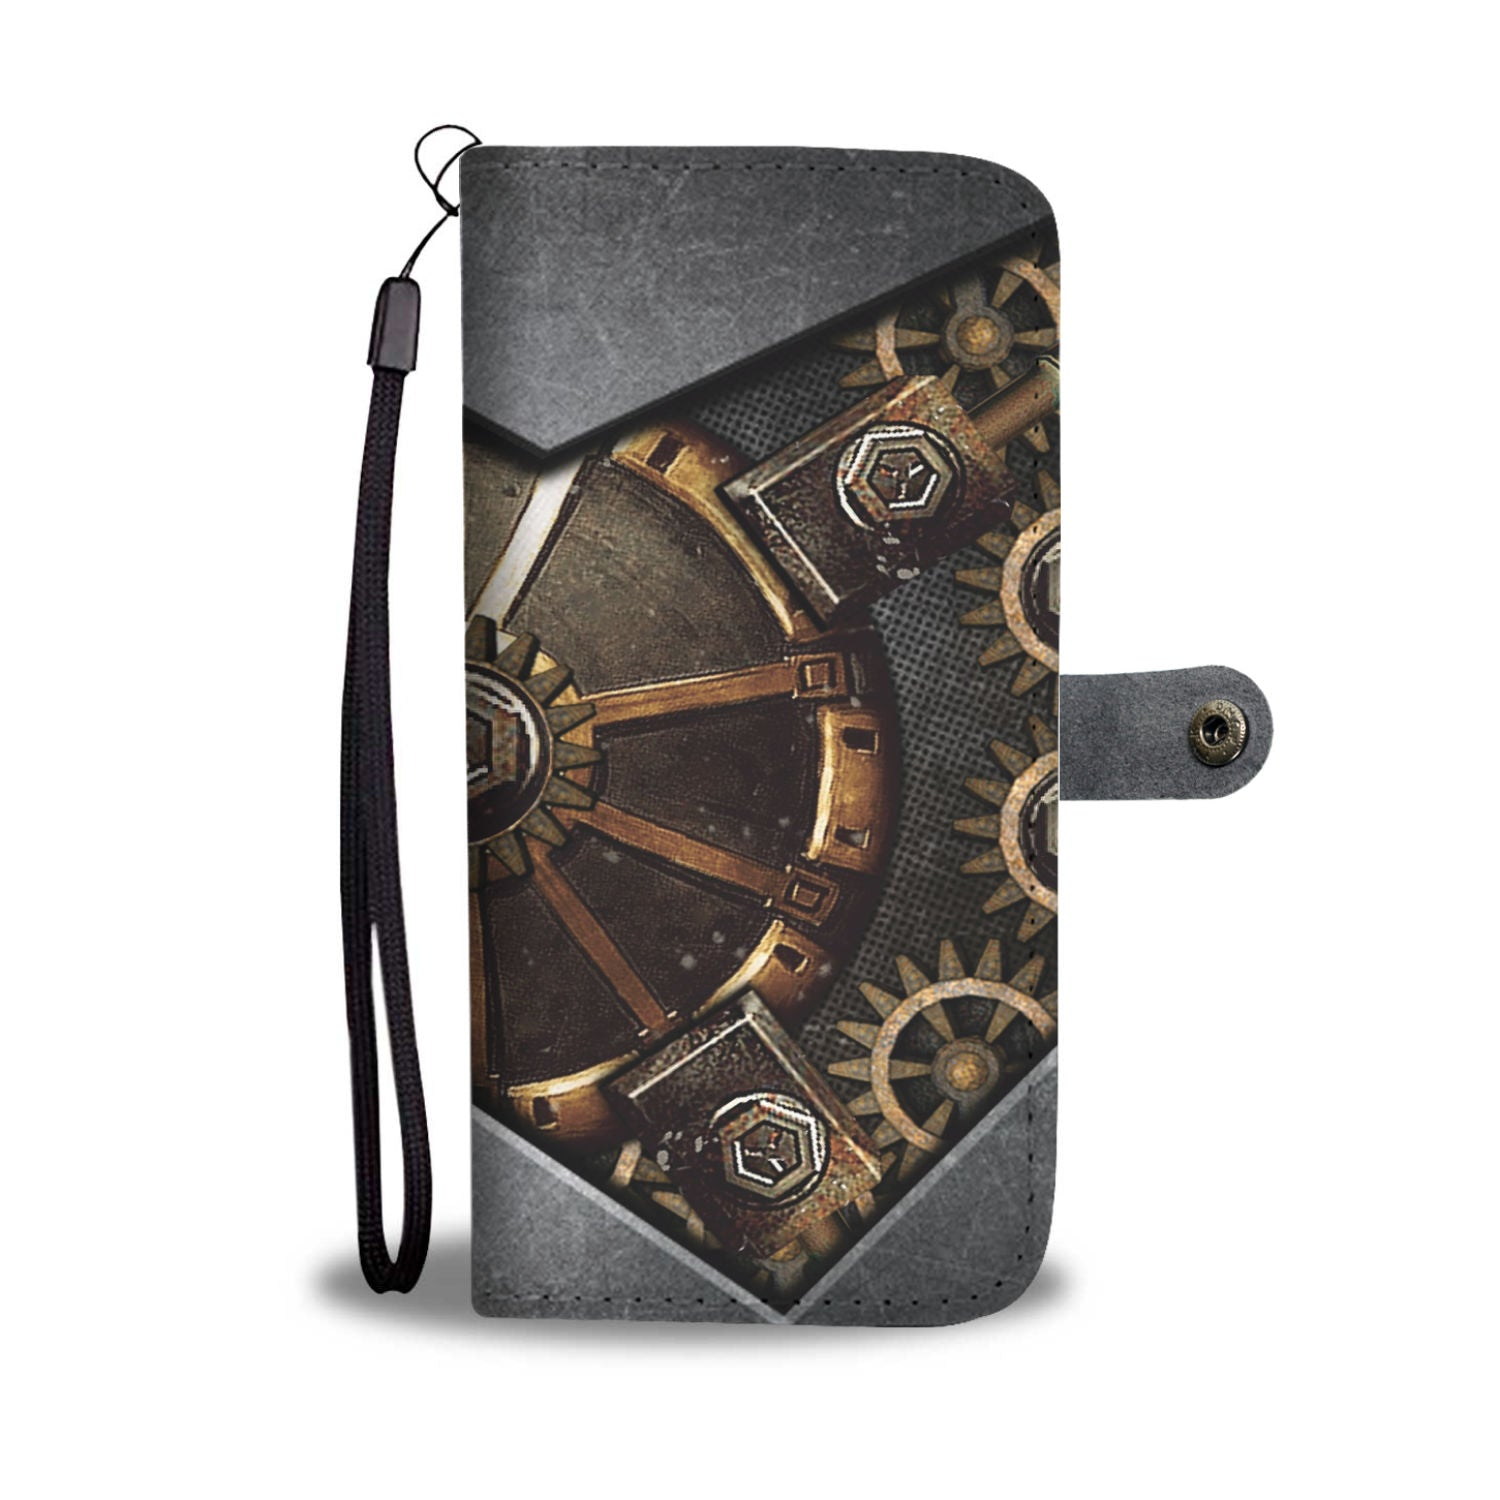 Steampunk Hidden Gear Wallet